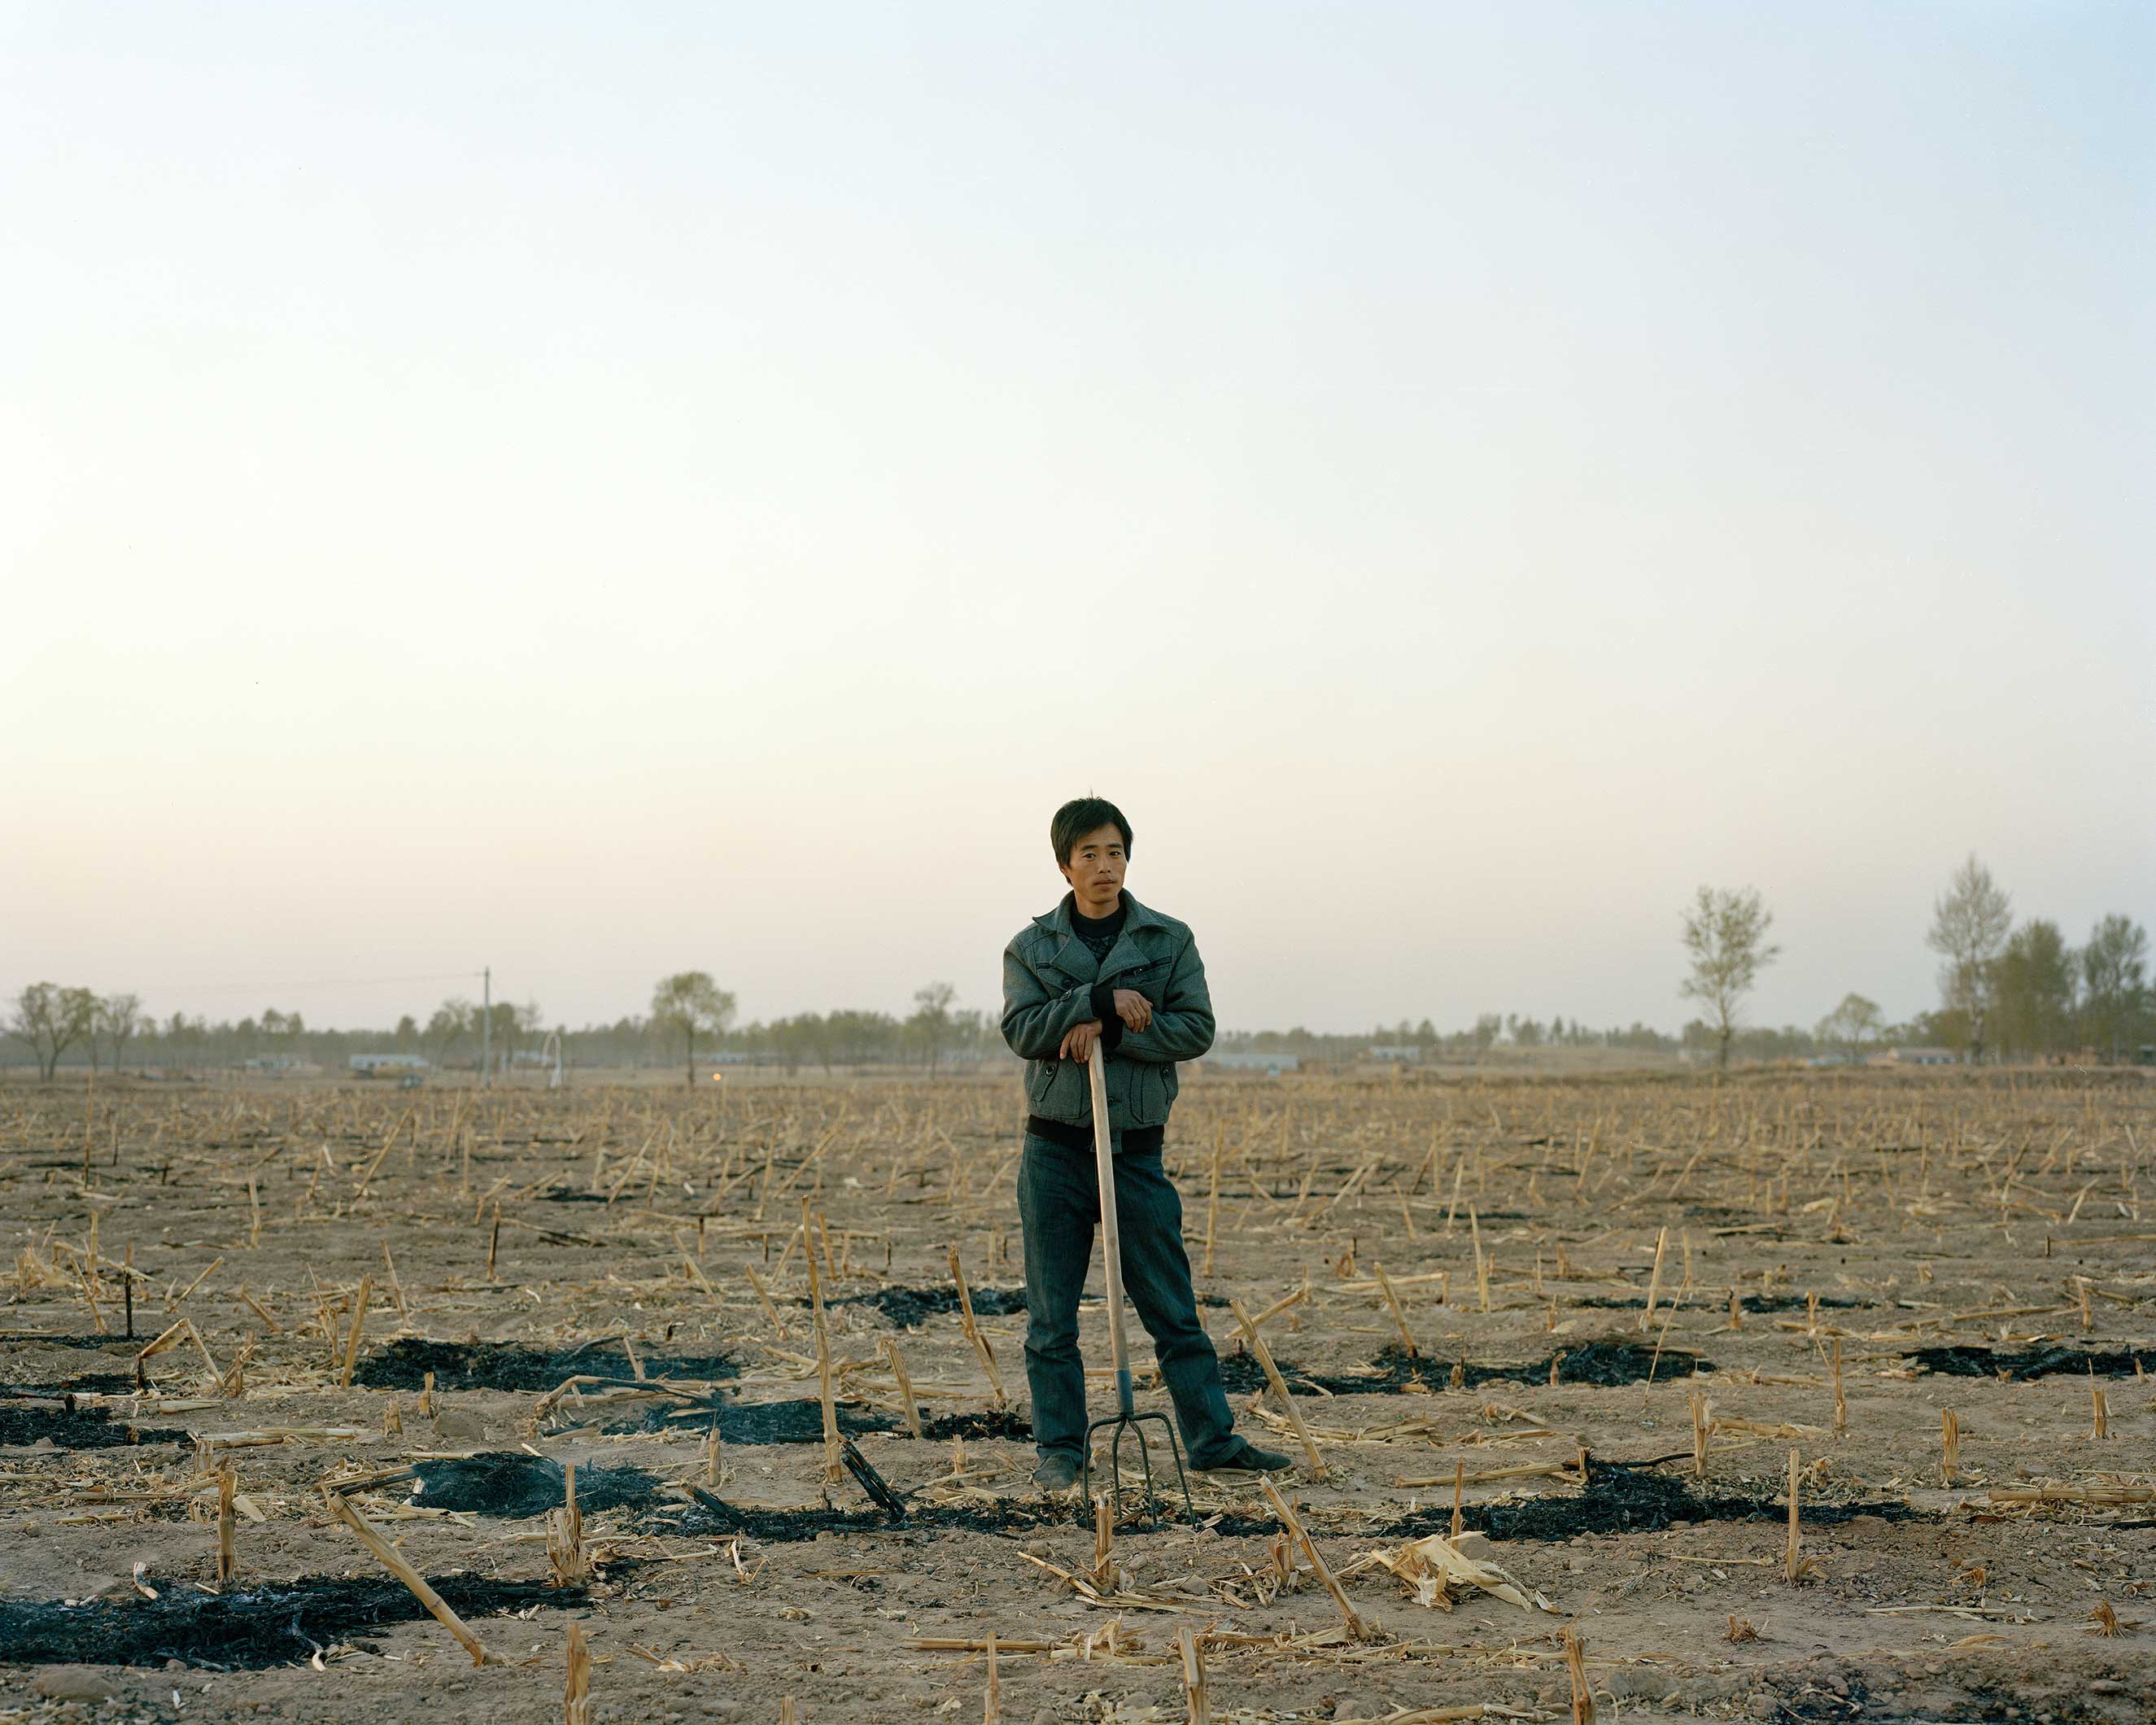 Dingbian, Shaanxi, China, April 2013. Thirty-one year old farmer.